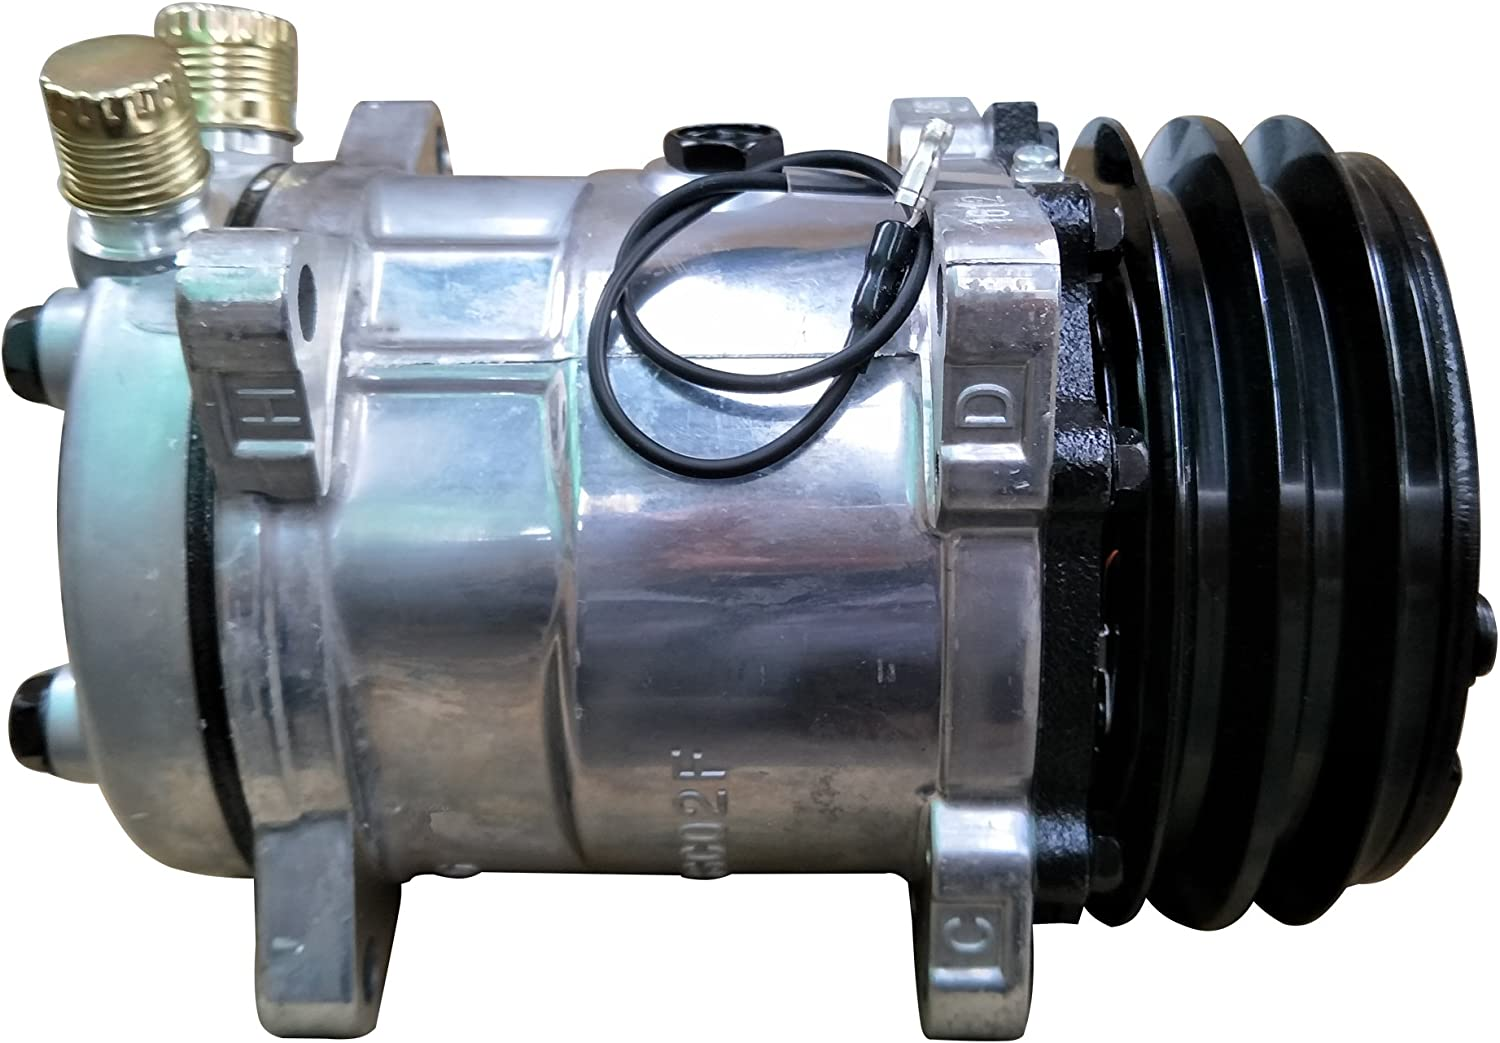 ACTECmax Universal A/C Compressor with Black 2PK Clutch SD 508 Style 5H14 R134A V Belt